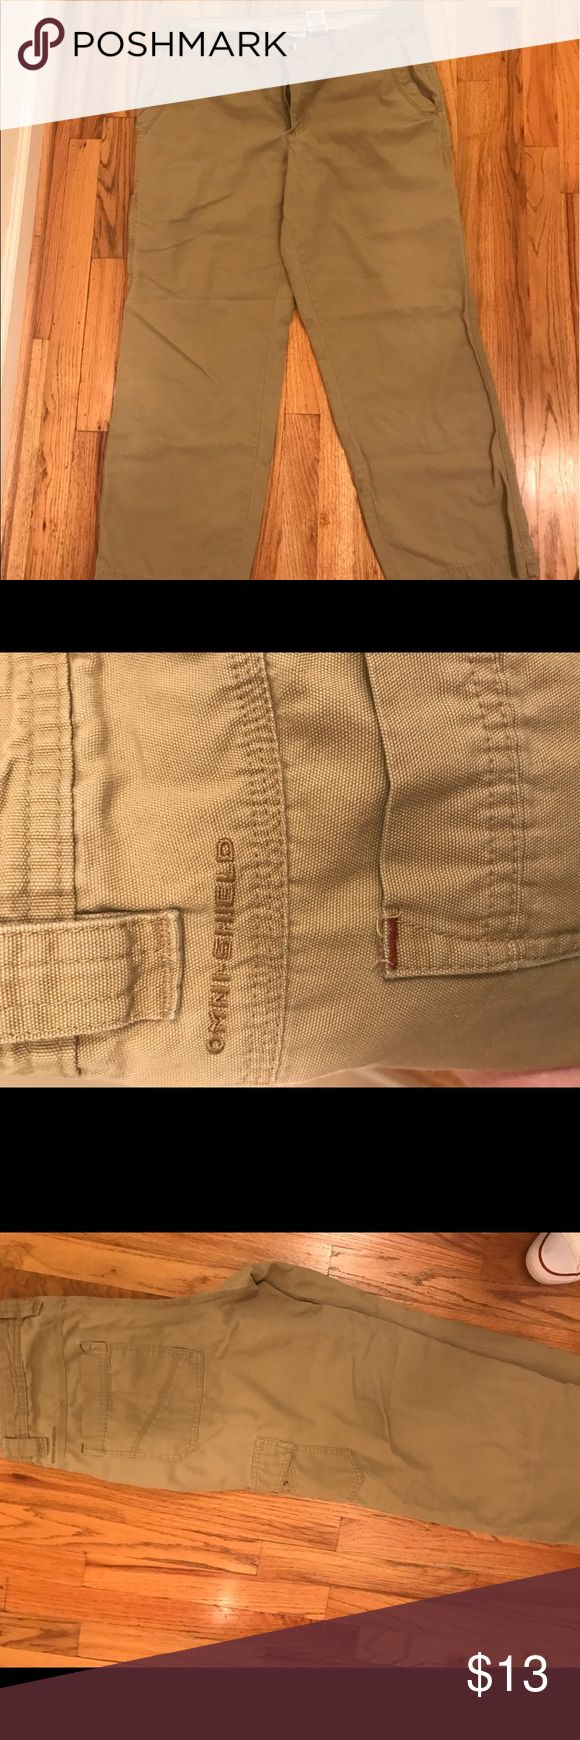 Columbia men's Lk nw Omni shield pants sz 36 x 30 Only worn maybe once or twice before my husband lost like 50 lbs on diet so his lose your gain these are like brand new no signs of wear . Columbia Pants Cargo